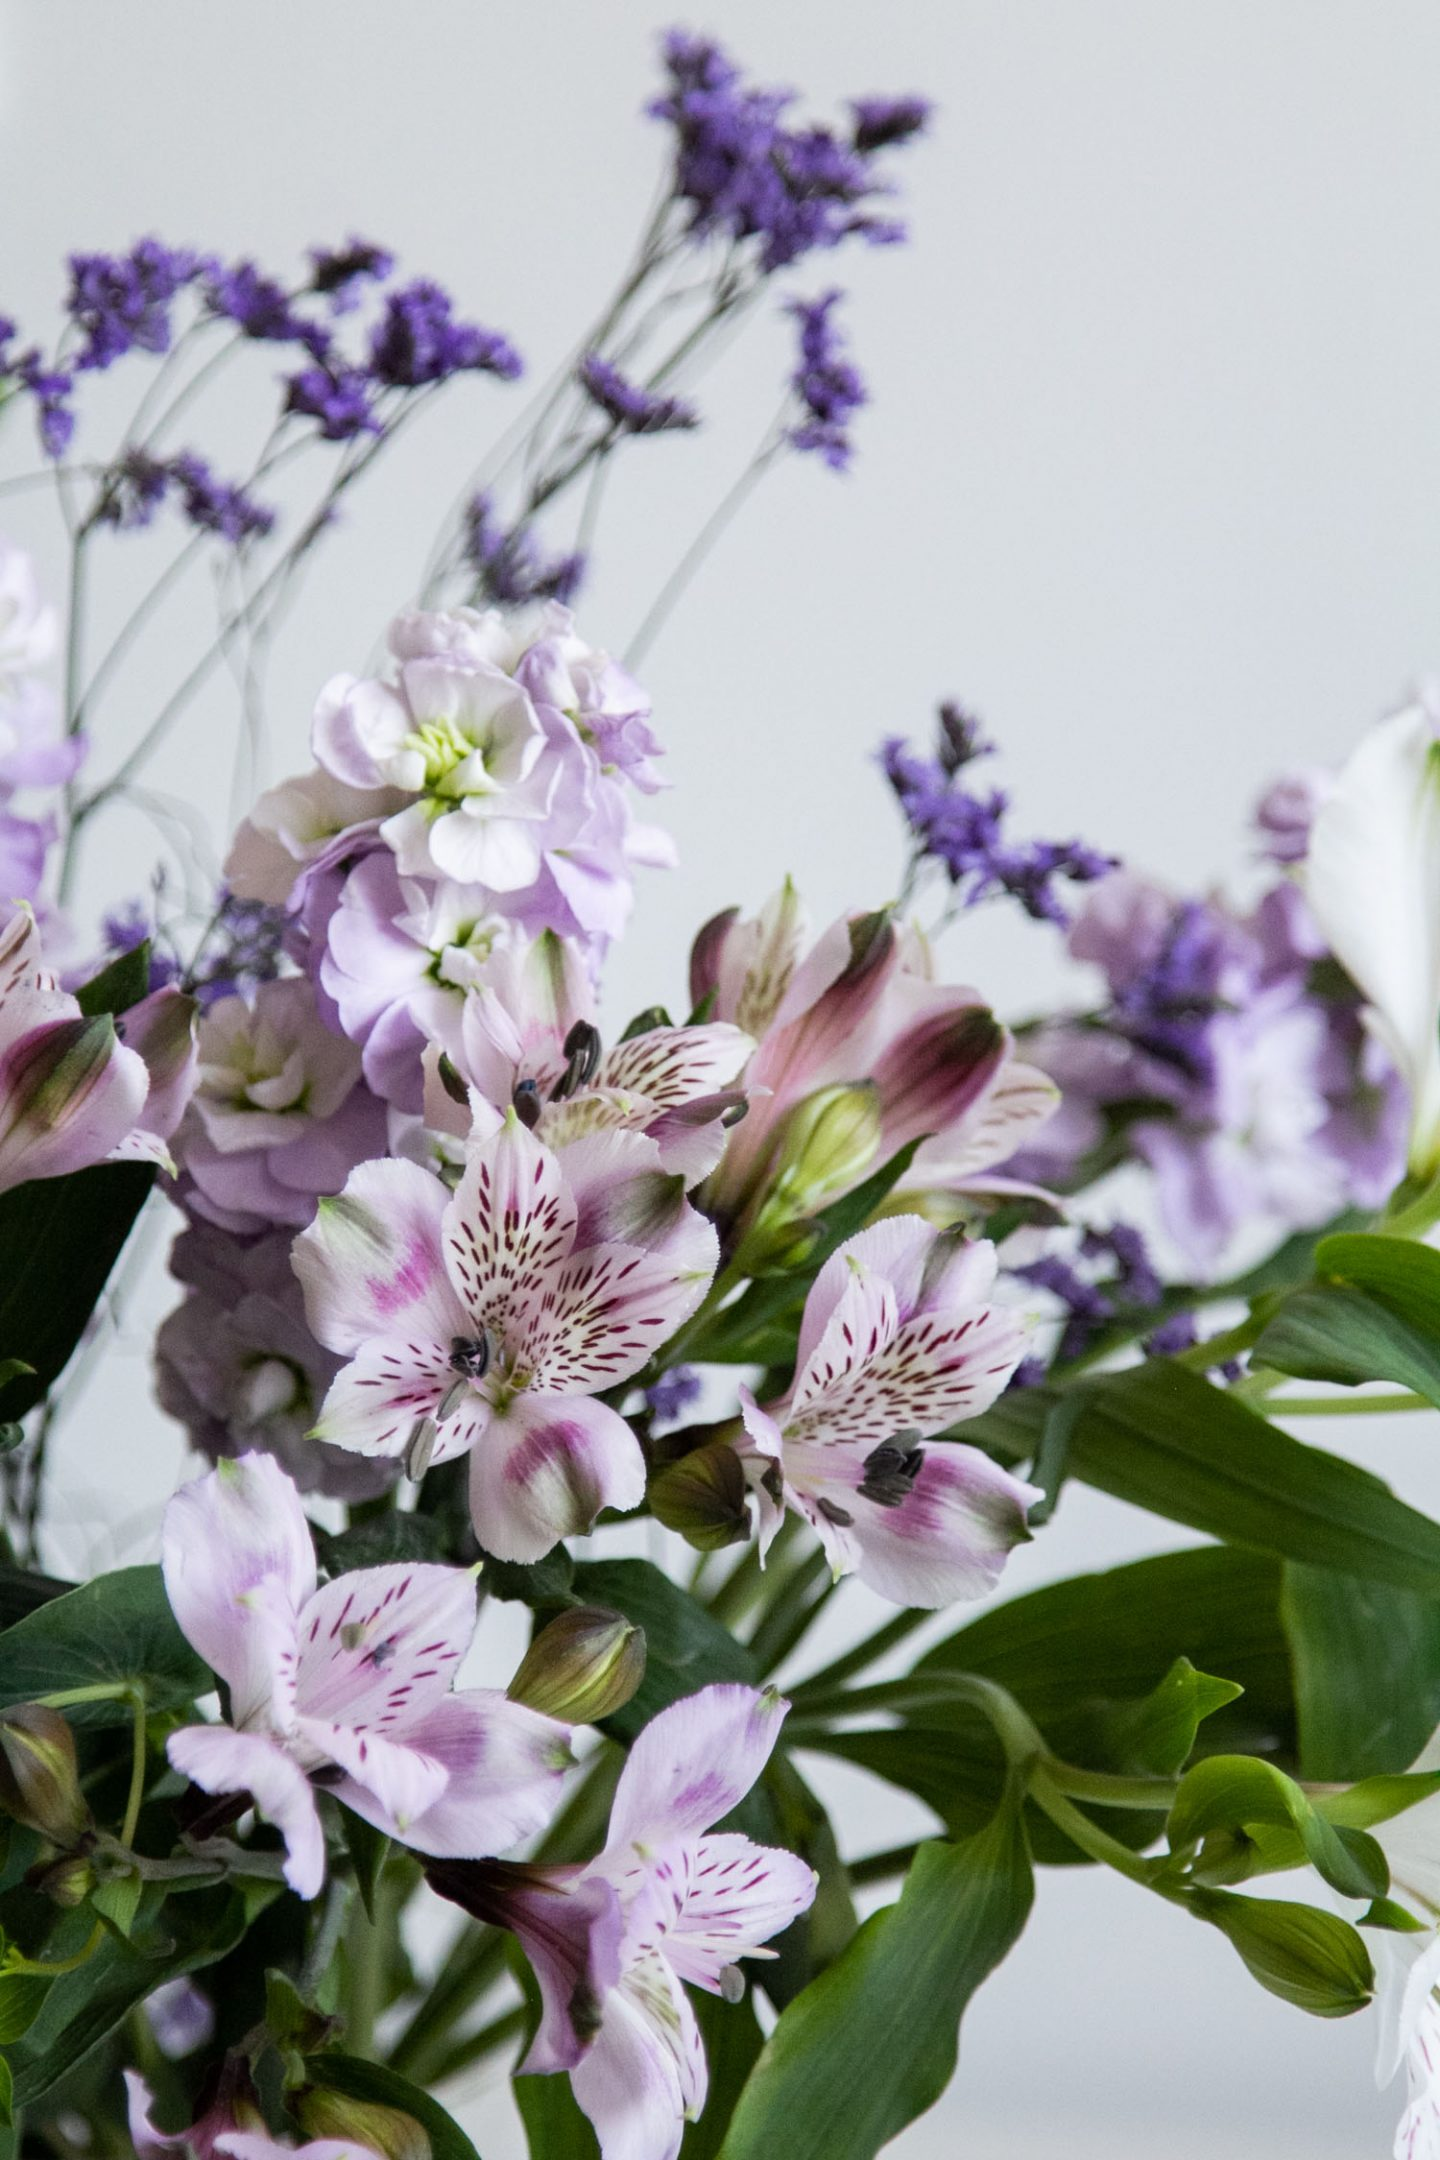 close up of purple and white flowers